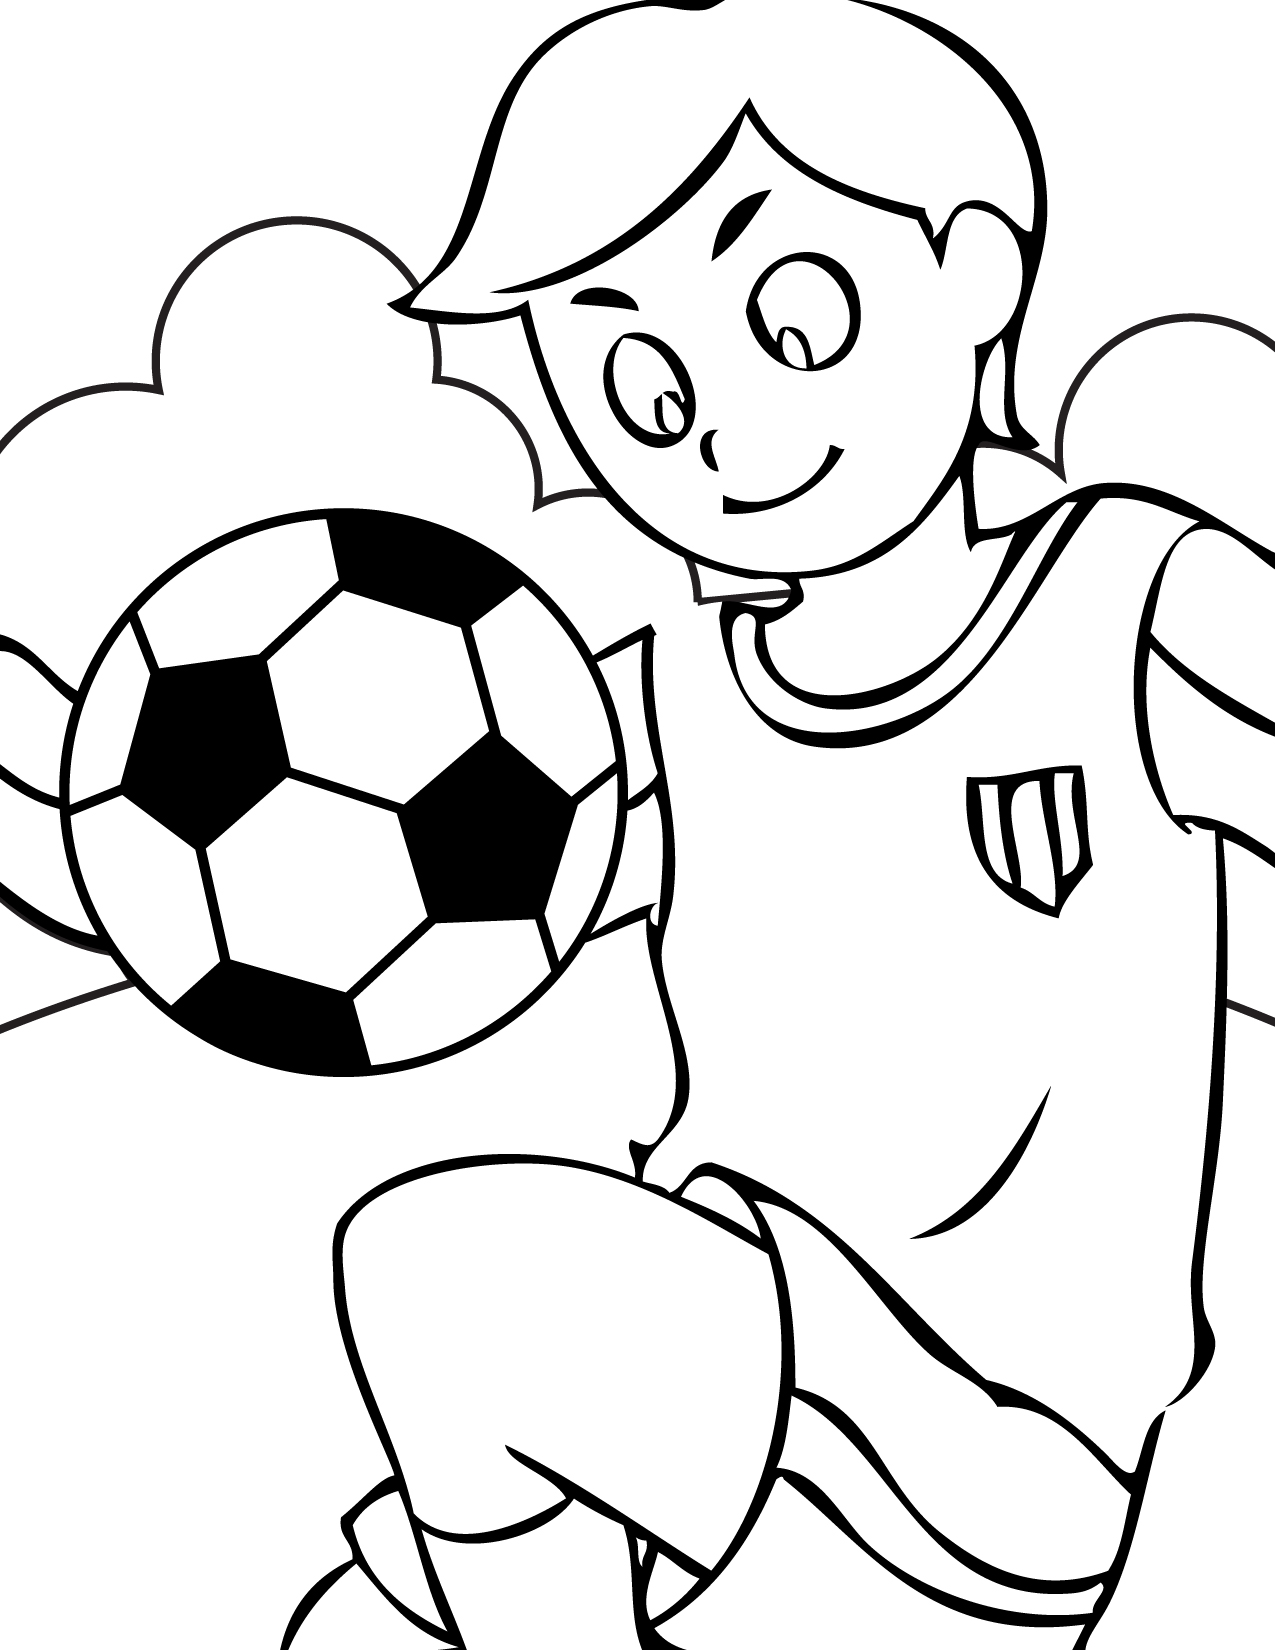 sports coloring pages for girls - photo#3